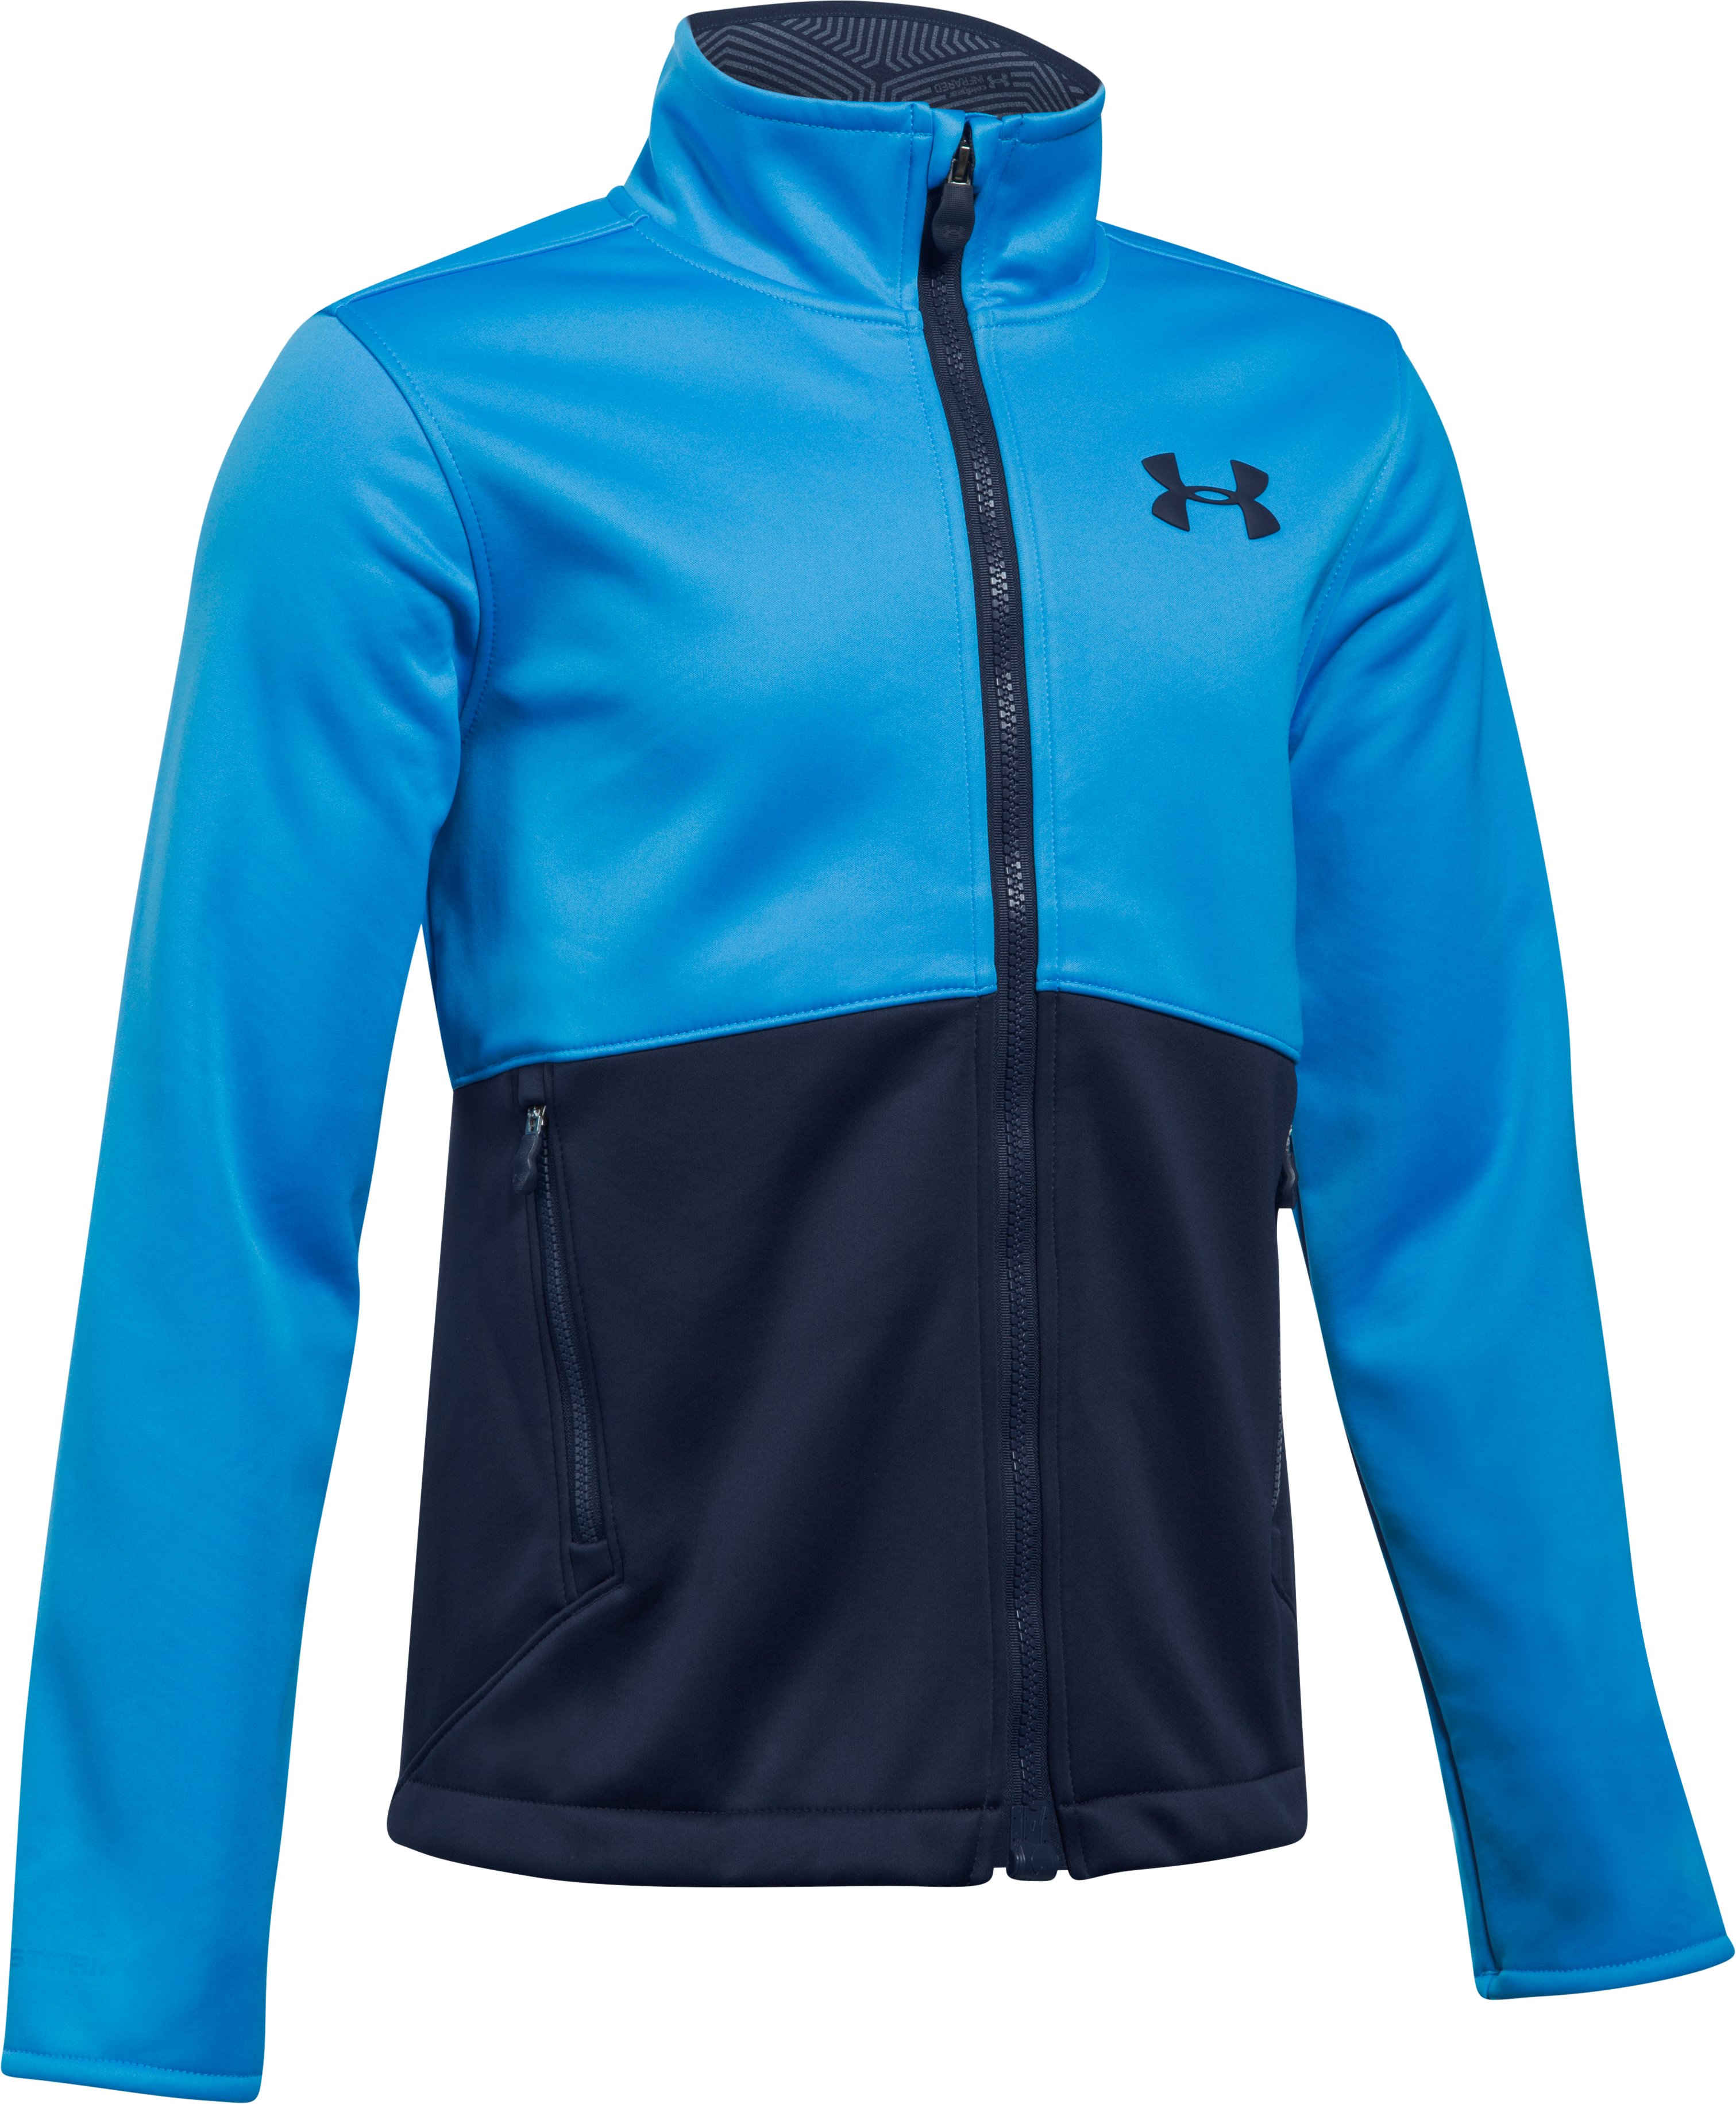 Boys' UA Storm Softershell Jacket, MAKO BLUE,